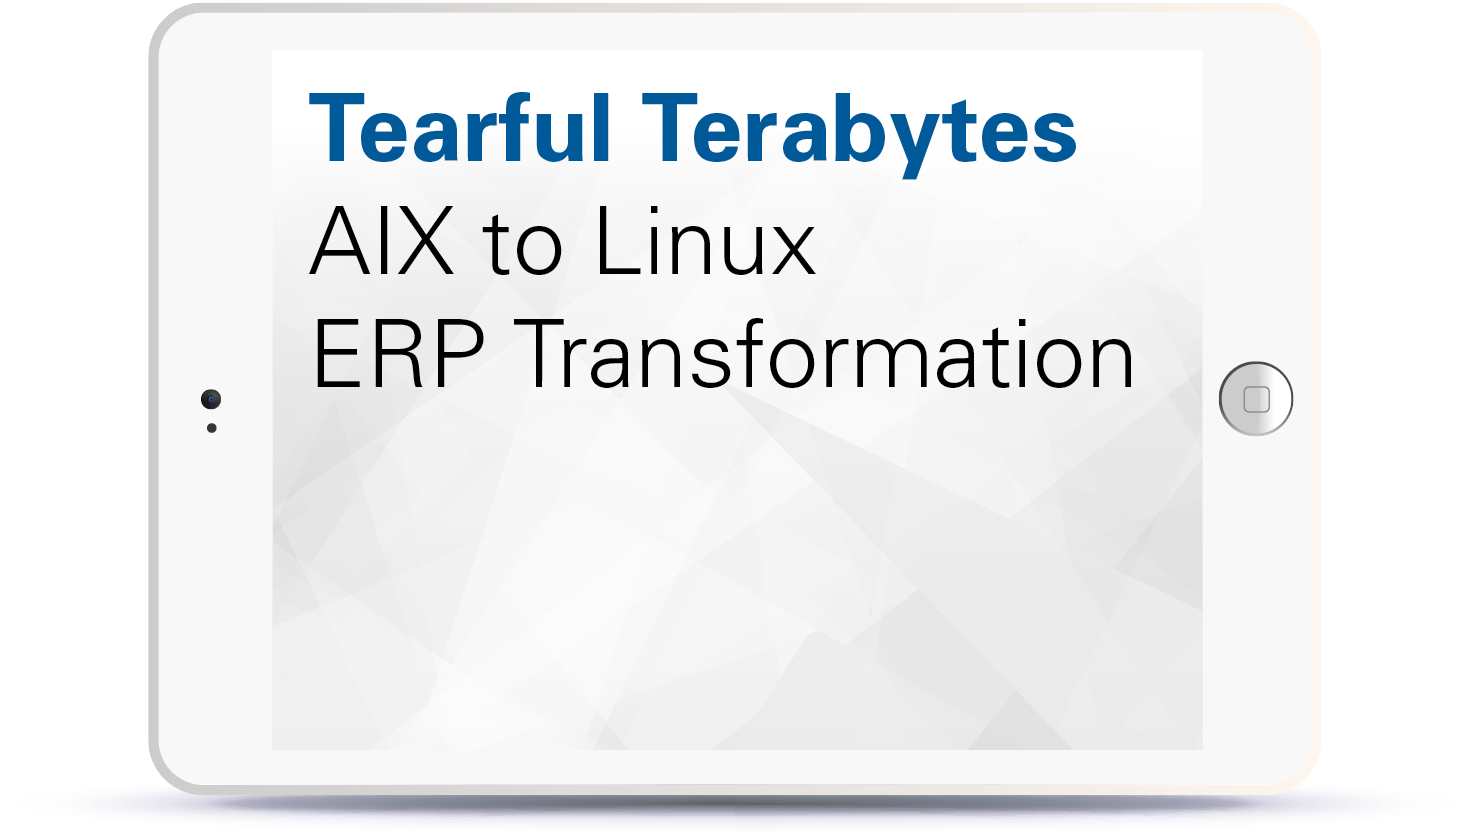 Webinar Tearful Terabytes - AIX to Linux ERP Transformation Book